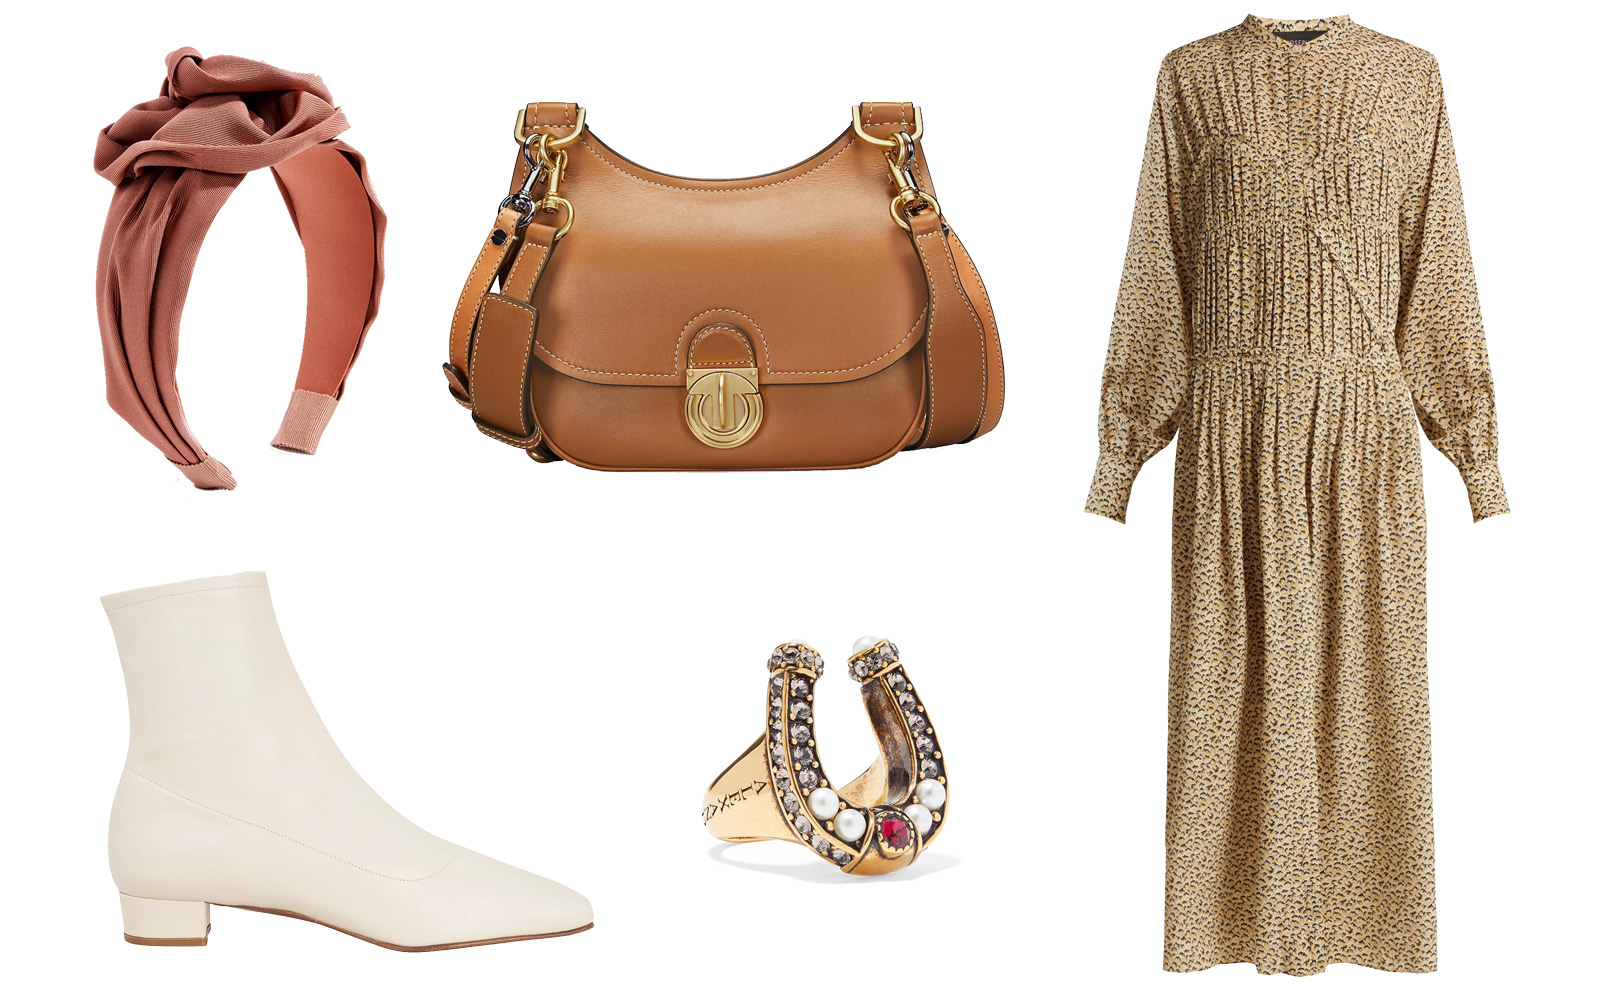 tory burch james saddlebag outfit